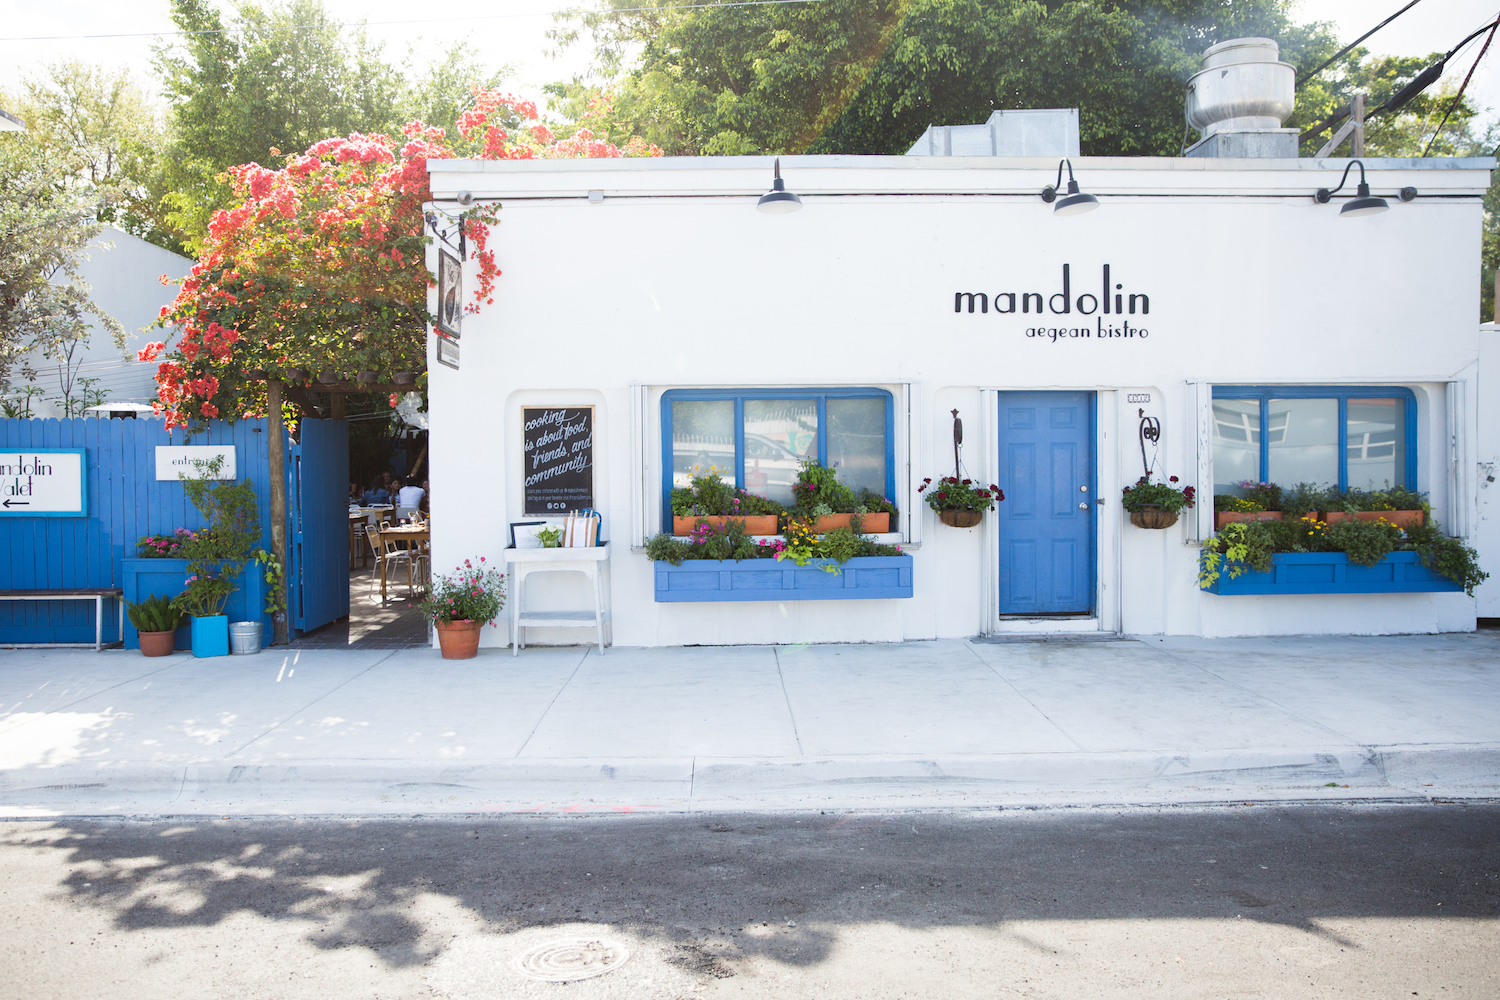 mandolin-aegean-bistro-best-restaurants-miami